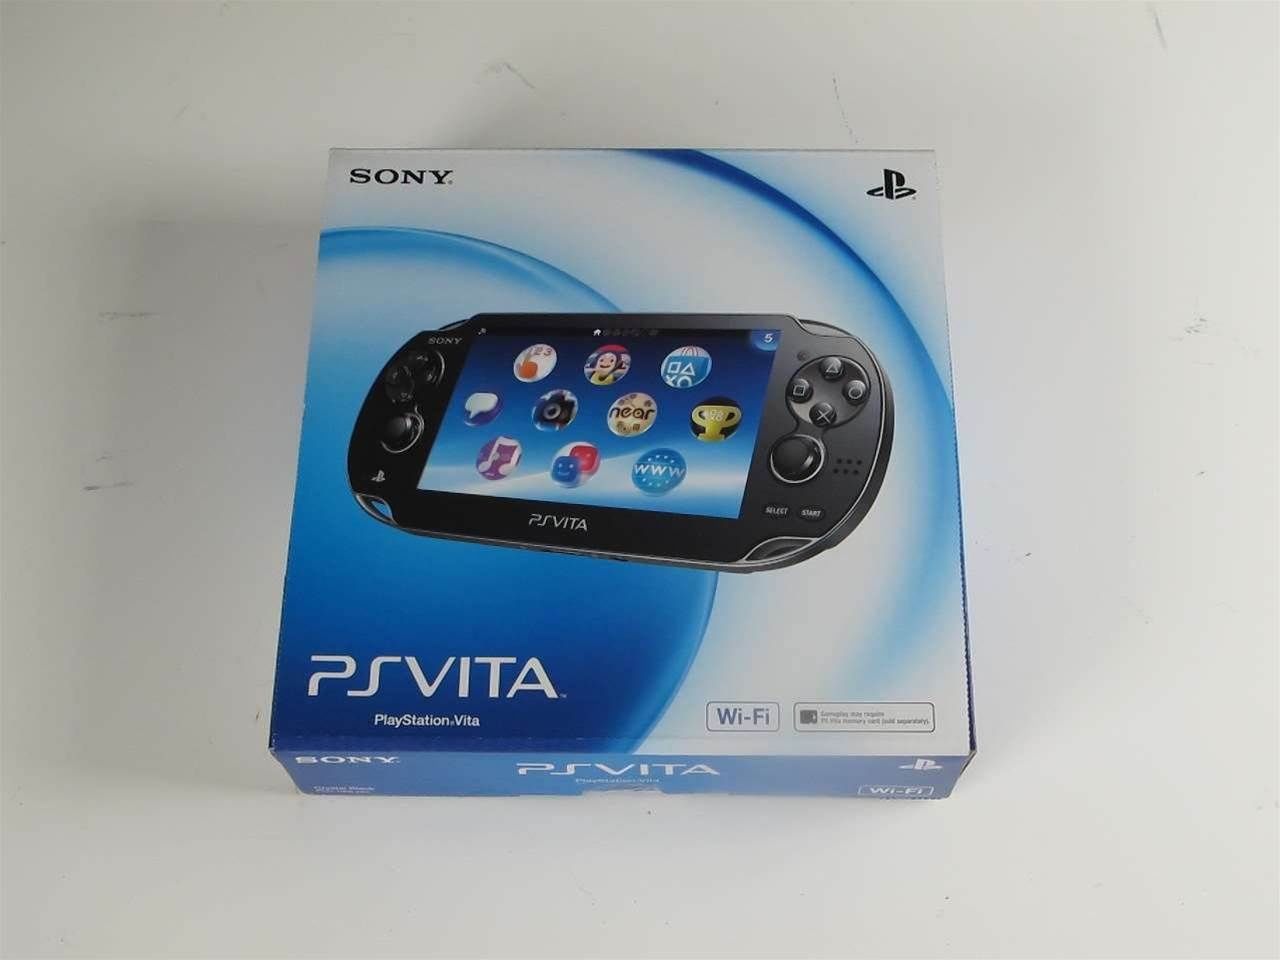 <h2>In Pictures: Sony PlayStation Vita unboxing</h2>Today, the hotly-anticipated Sony PlayStation Vita finally hit stores around Australia. Check out the rest of the gallery for an in-depth unboxing.